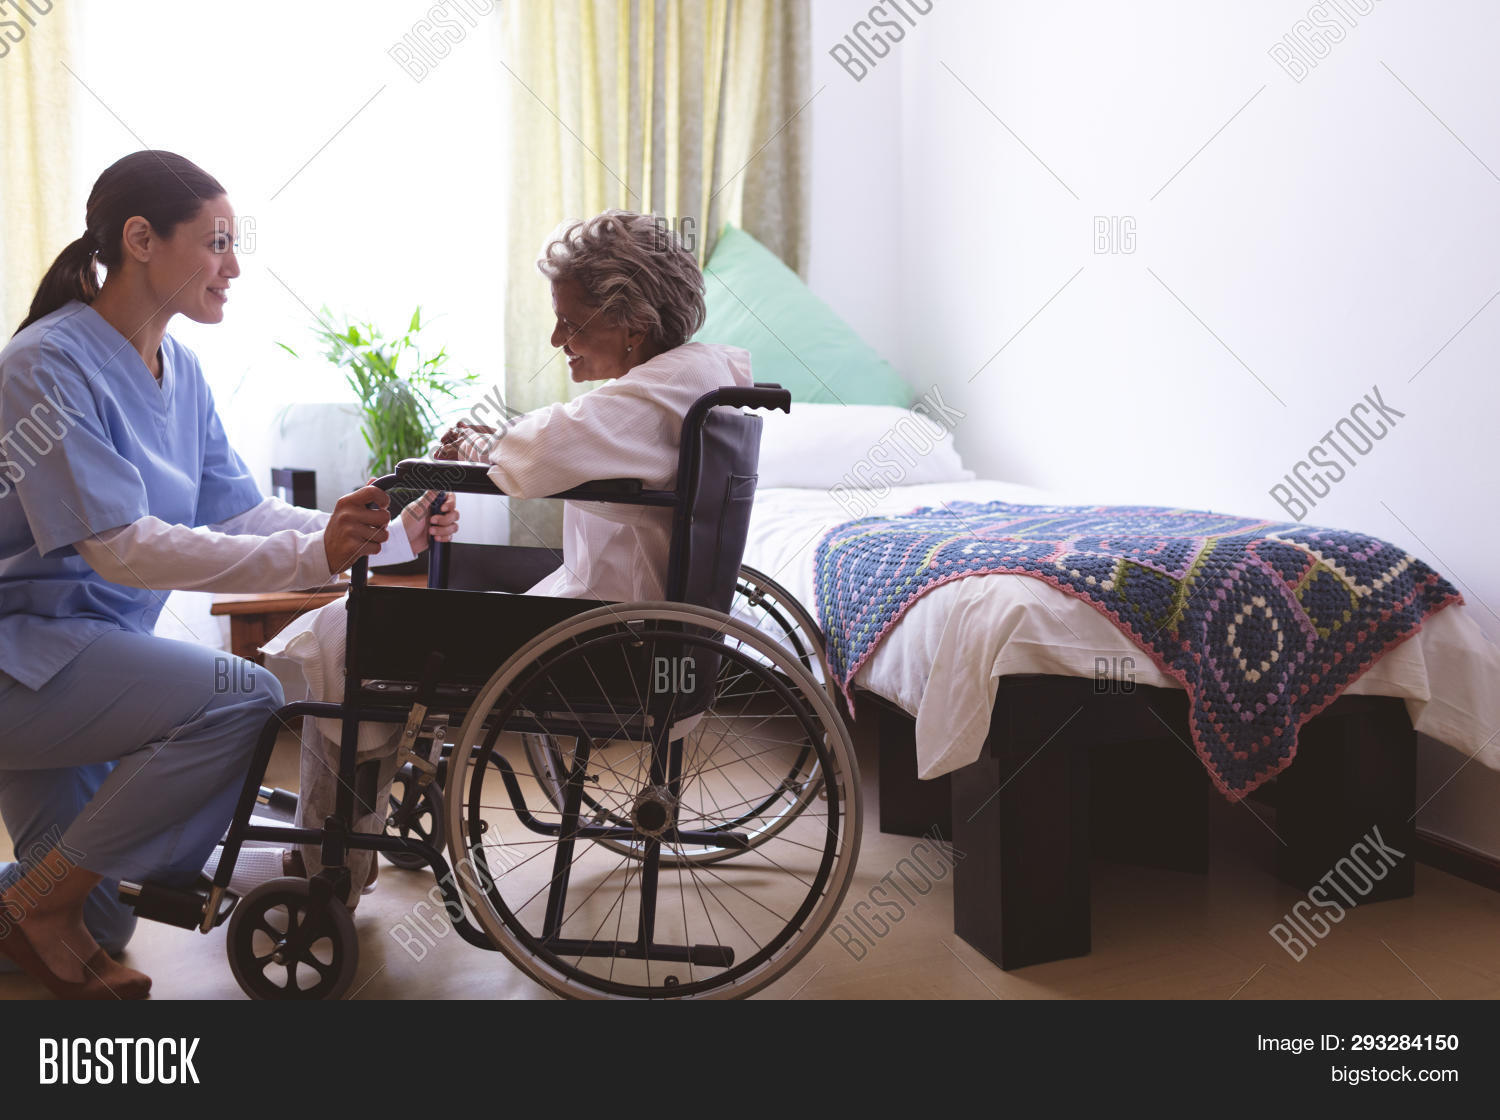 accommodation,active,active senior,care,checkup,clinic,daycare,disabled,discussing,elderly,expertise,female,handicapped,health care,interacting,leisure,lifestyle,medical examination,medicine,mid adult,mid adult women,mixed-race,mixed-race person,nurse,nursing,nursing home,occupations,old-age,patient,pensioner,physical impairment,retiree,retirement,retirement home,senior,senior citizen,senior women,shelter,sitting,talking,together,treatment,trust,uniform,wheelchair,woman